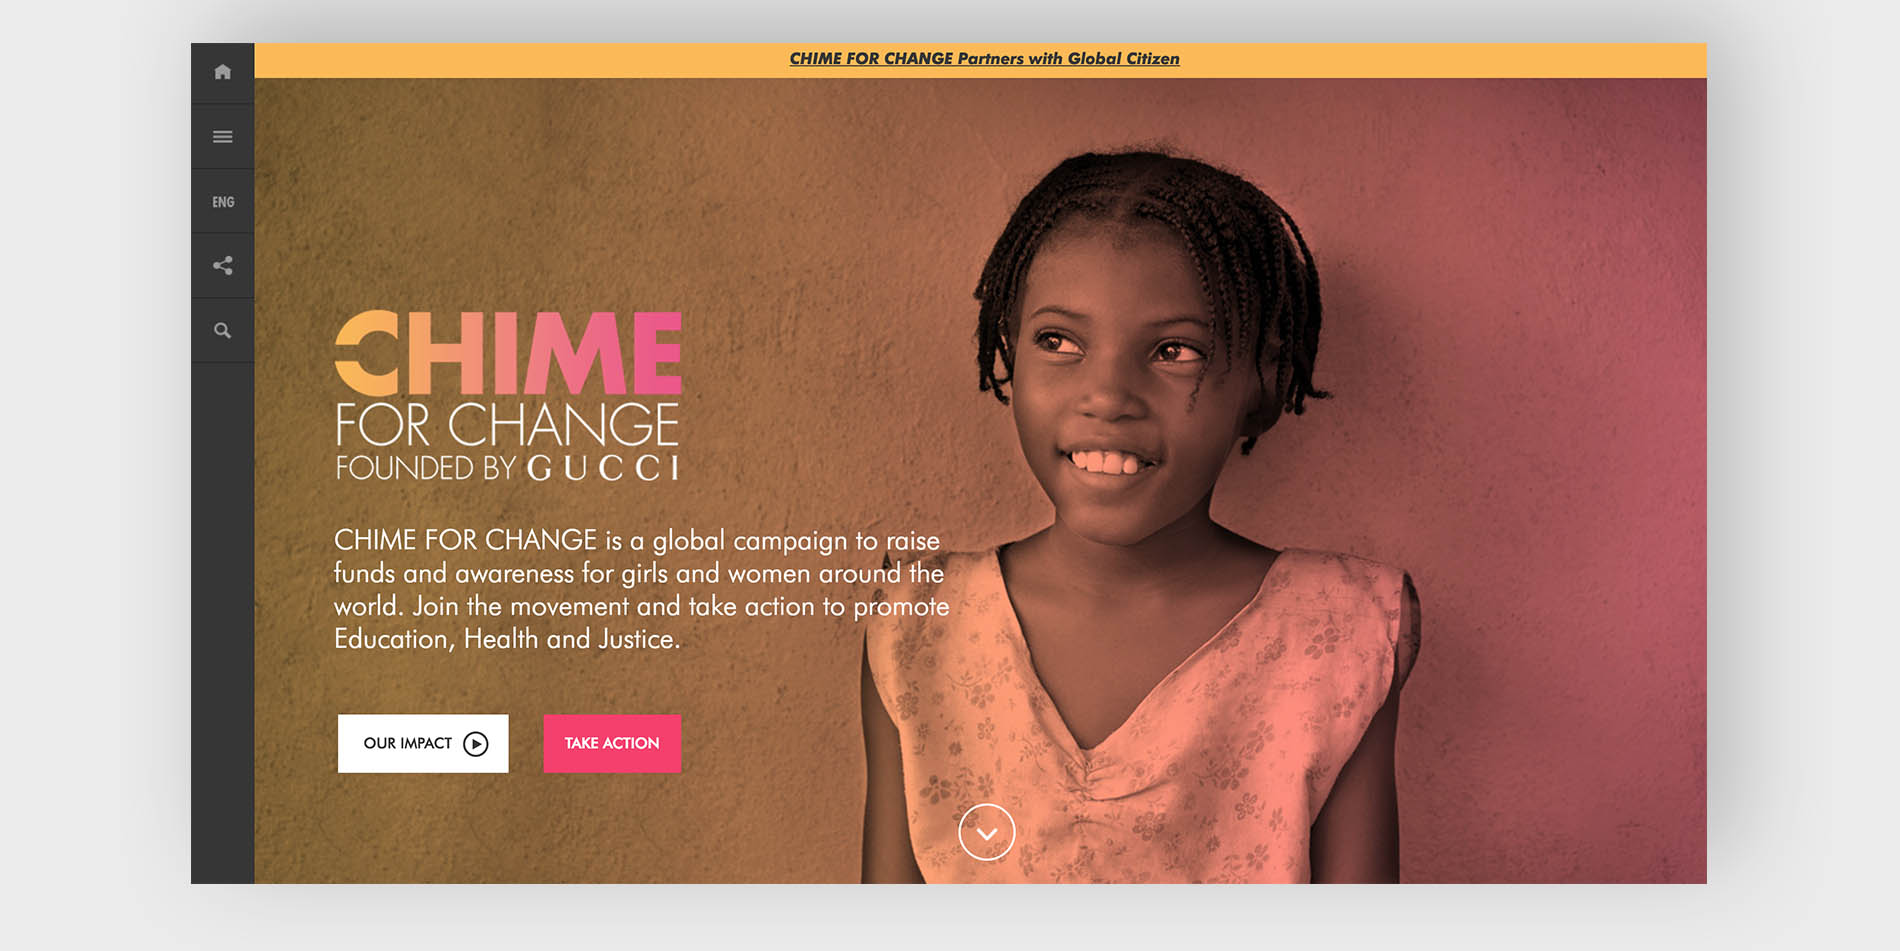 Gucci's Chime for Change website